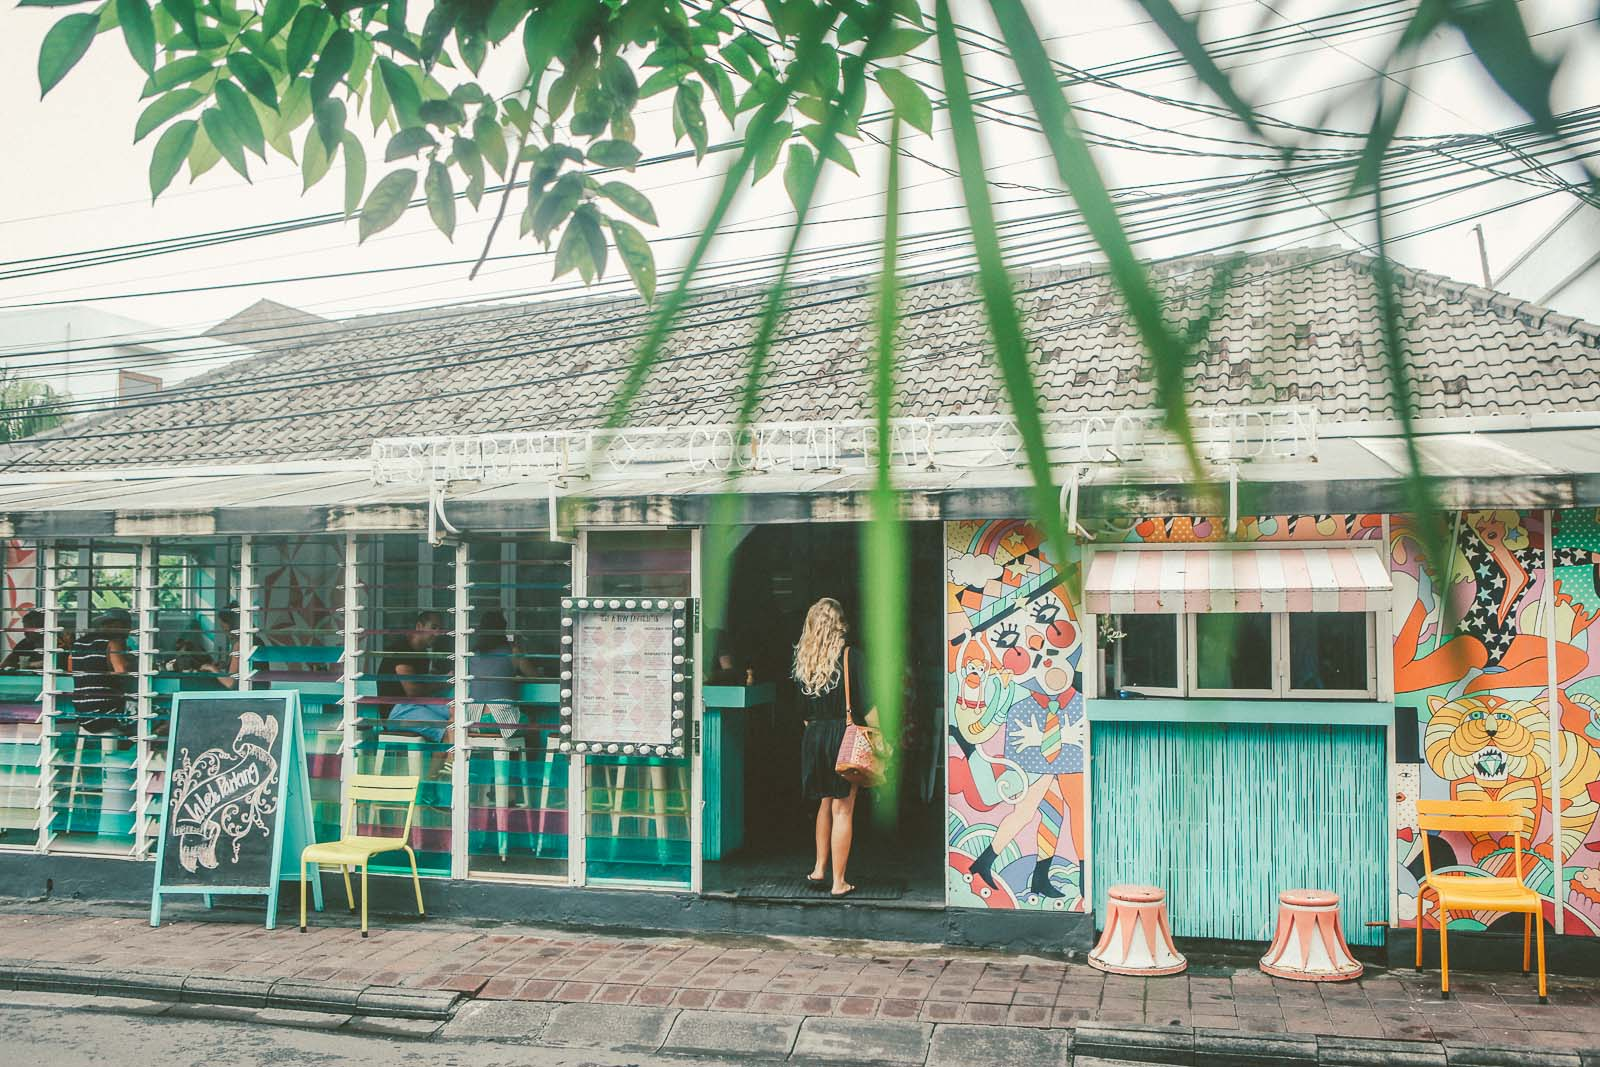 Bali-Travel-Blog-Seminyak-Restaurant-Bar-Breakfast-Surf-Uluwatu-The-Colonial-Hotel-Sea-Circus-2301